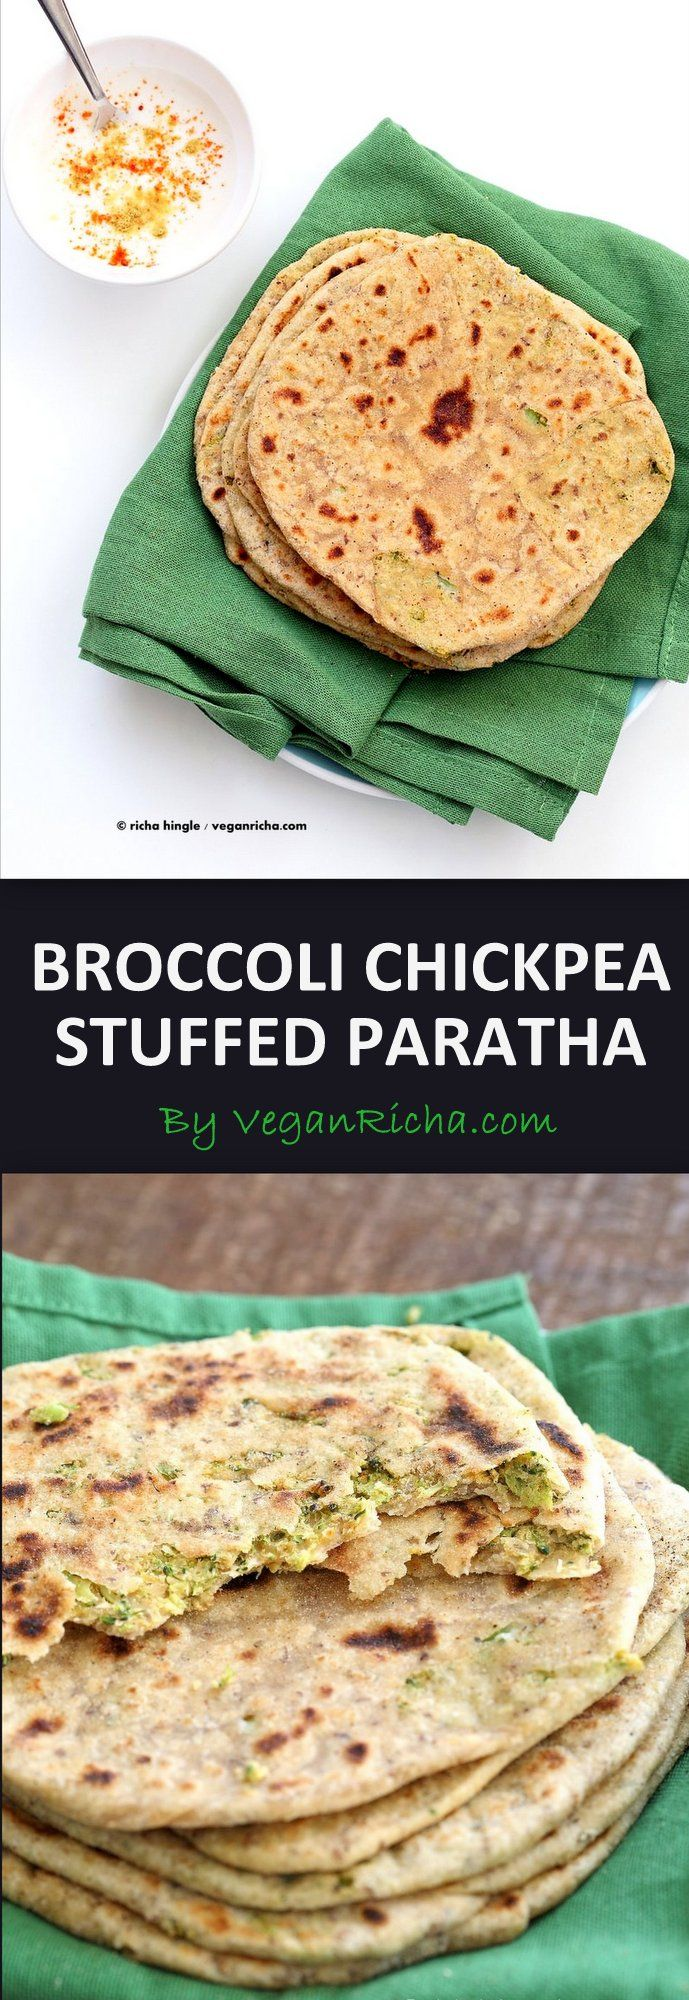 Broccoli Chickpea Stuffed Flatbread - Broccoli Paratha. Shredded broccoli, mashed chickpeas and spices stuffed in a paratah flatbread.